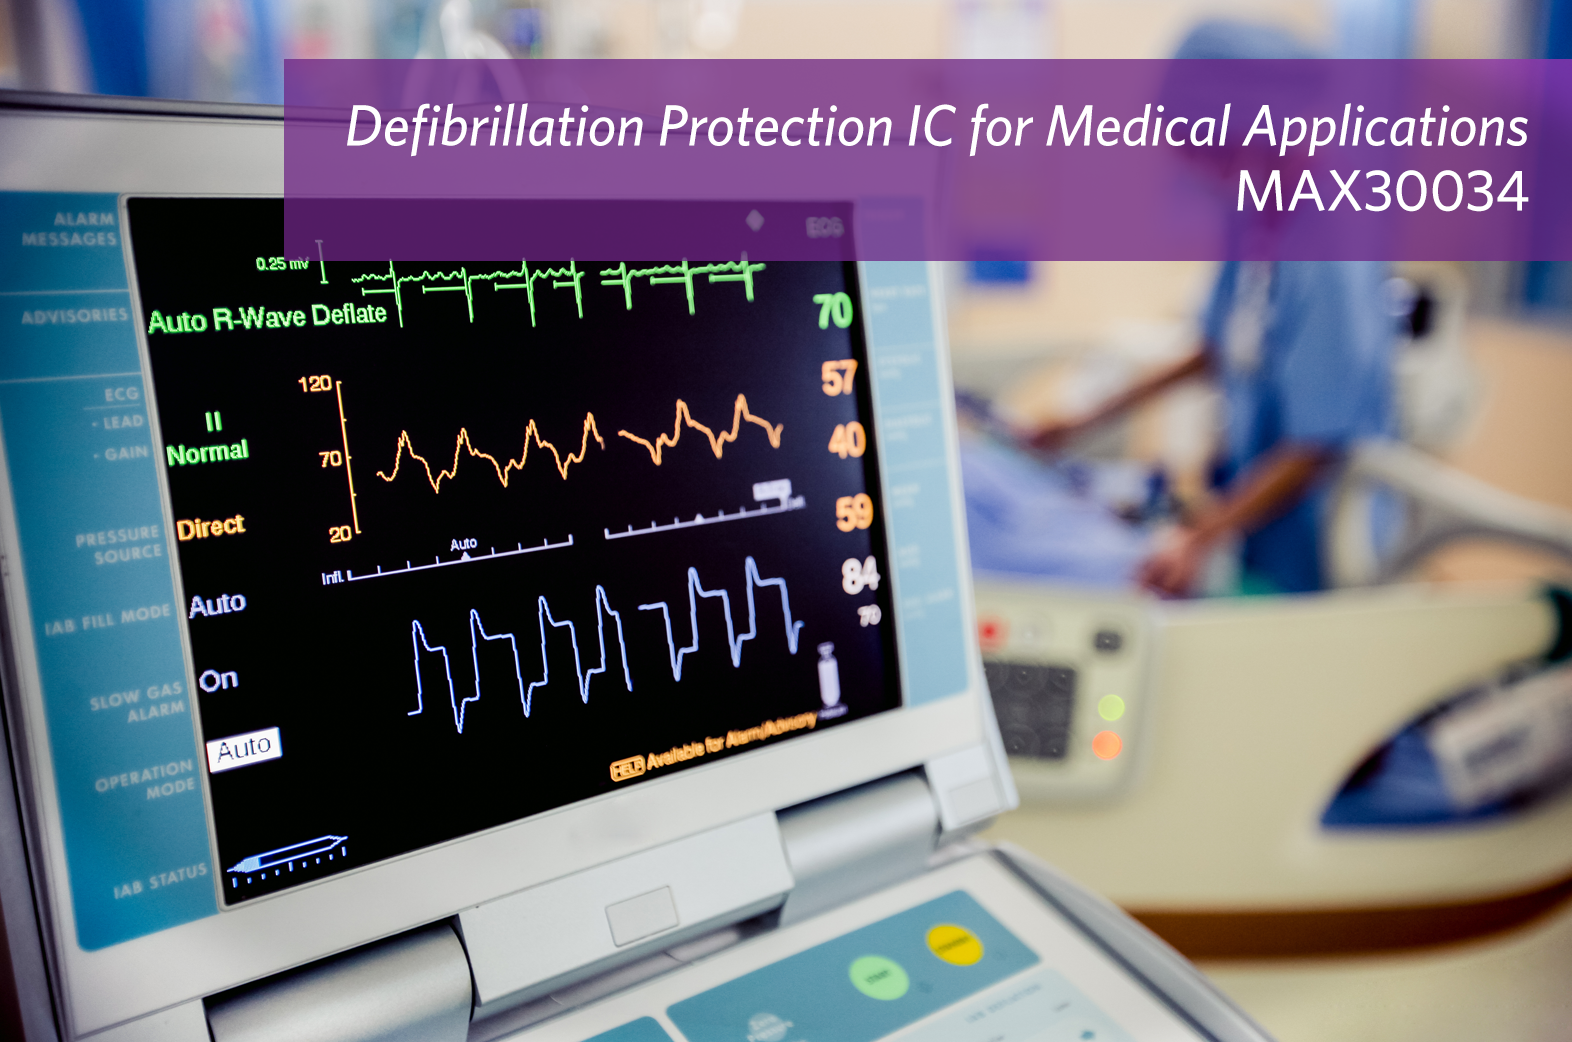 Maxim's defibrillation and ESD protection device safeguards medical devices